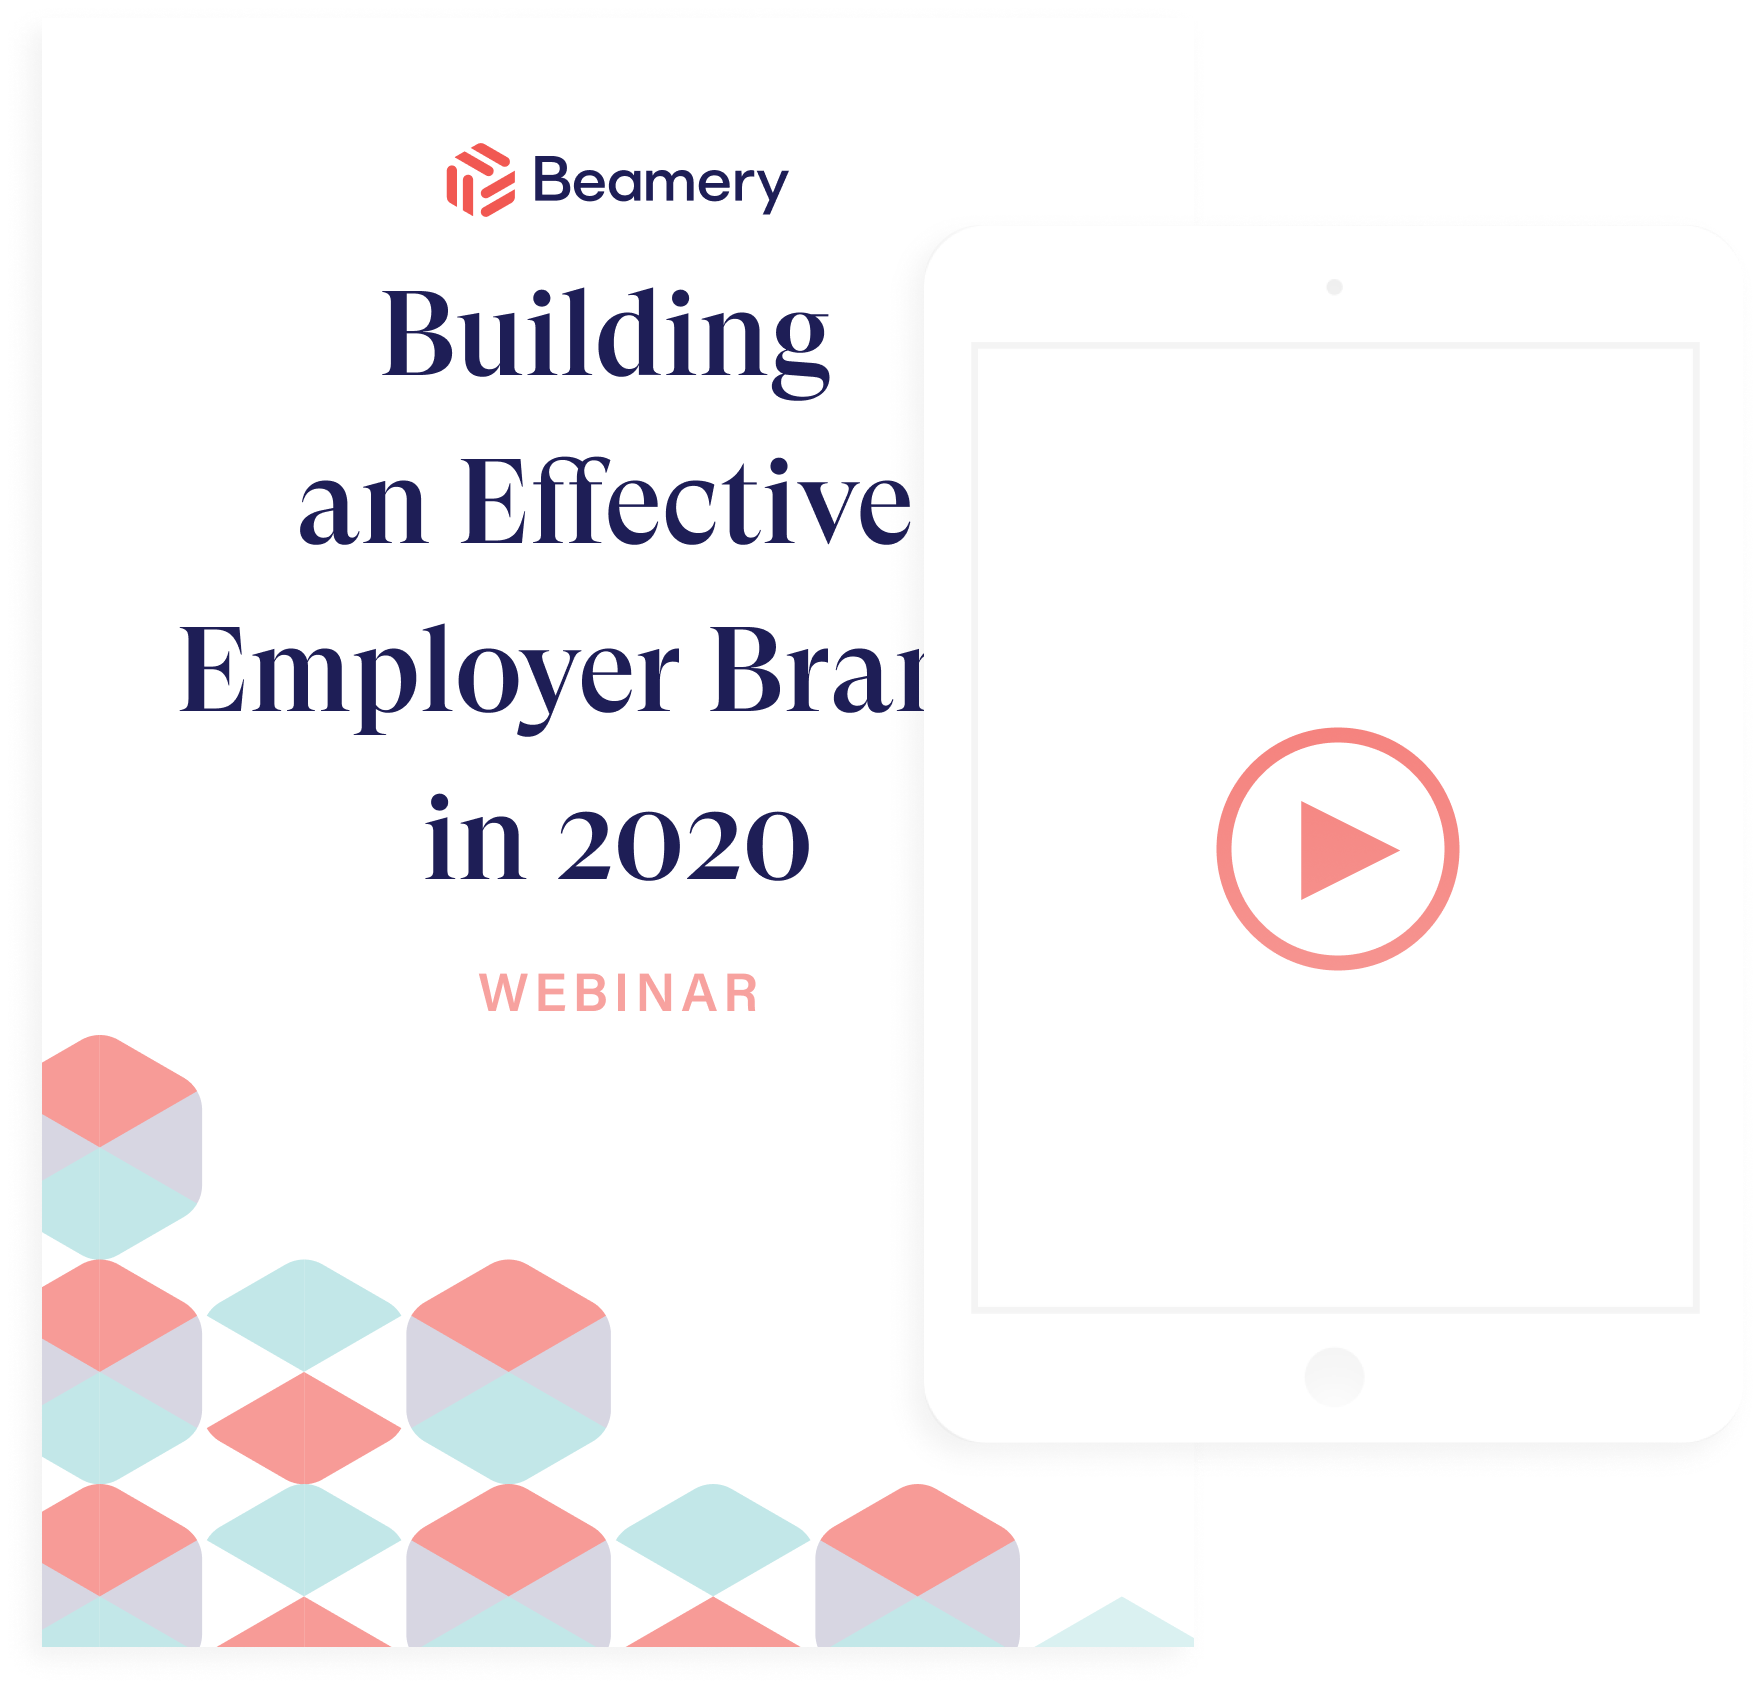 Building an Effective Employer Brand in 2020